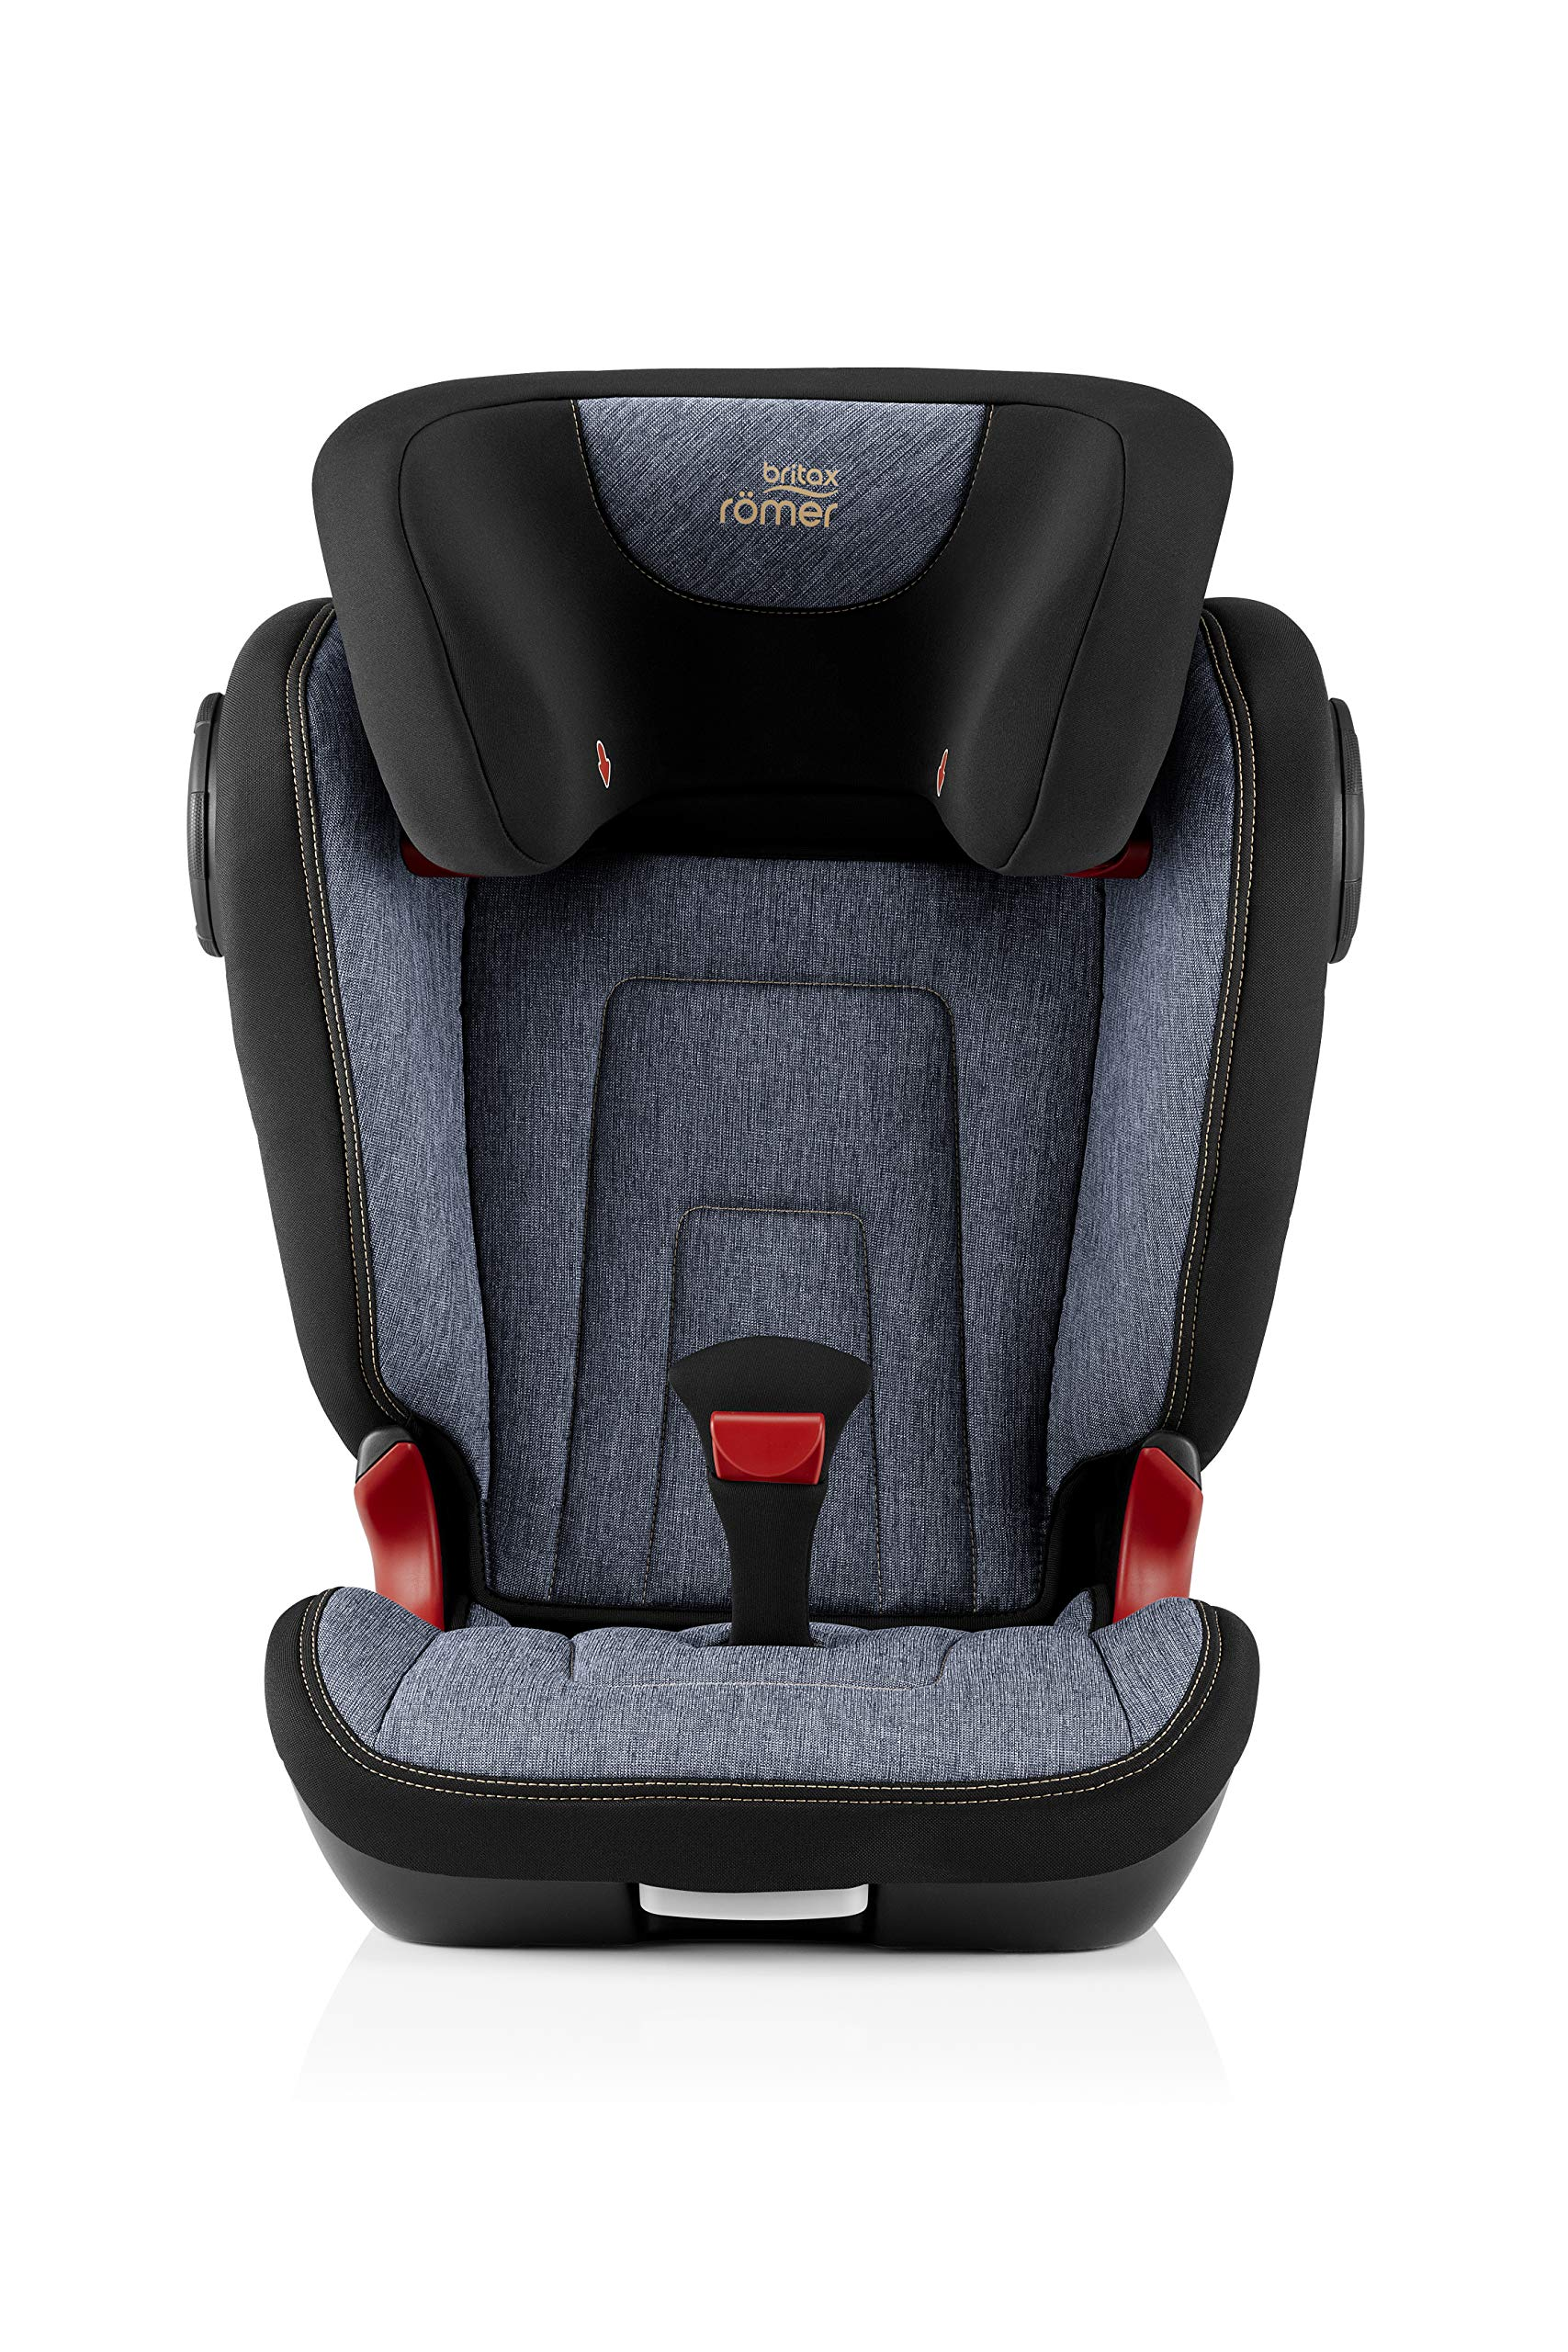 Britax Römer KIDFIX² S Group 2-3 (15-36kg) Car Seat - Blue Marble Britax Römer Advanced side impact protection - sict offers superior protection to your child in the event of a side collision. reducing impact forces by minimising the distance between the car and the car seat. Secure guard - helps to protect your child's delicate abdominal area by adding an extra - a 4th - contact point to the 3-point seat belt. High back booster - protects your child in 3 ways: provides head to hip protection; belt guides provide correct positioning of the seat belt and the padded headrest provides safety and comfort. 2